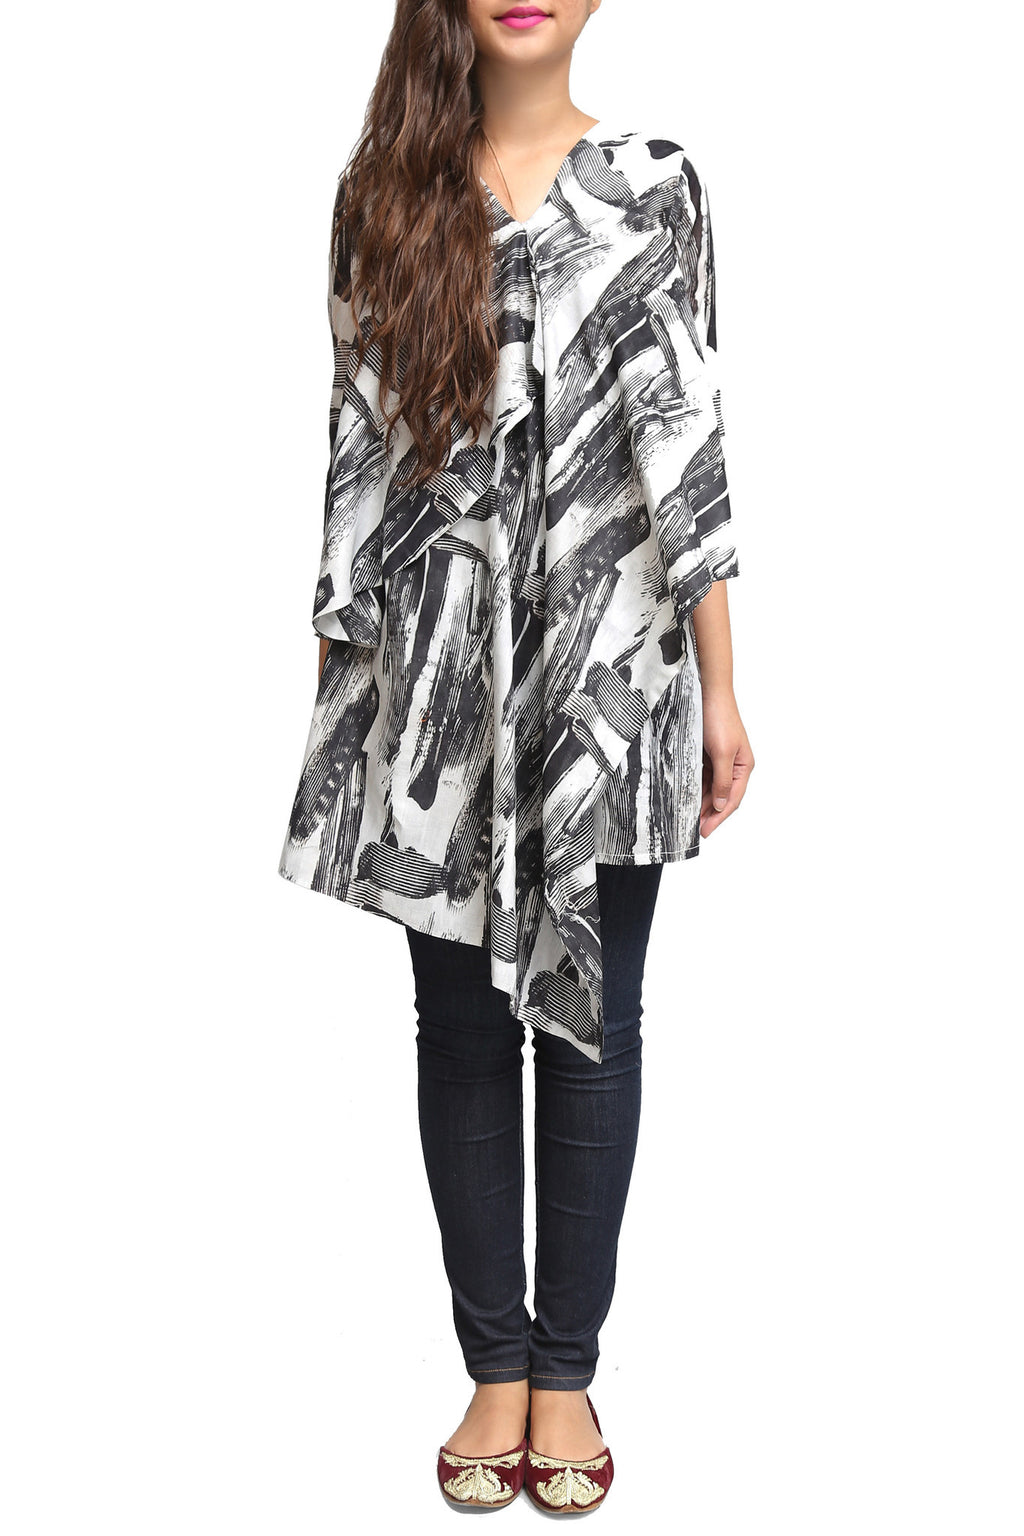 Generation - Black Dobby Viscose Printed Shirt